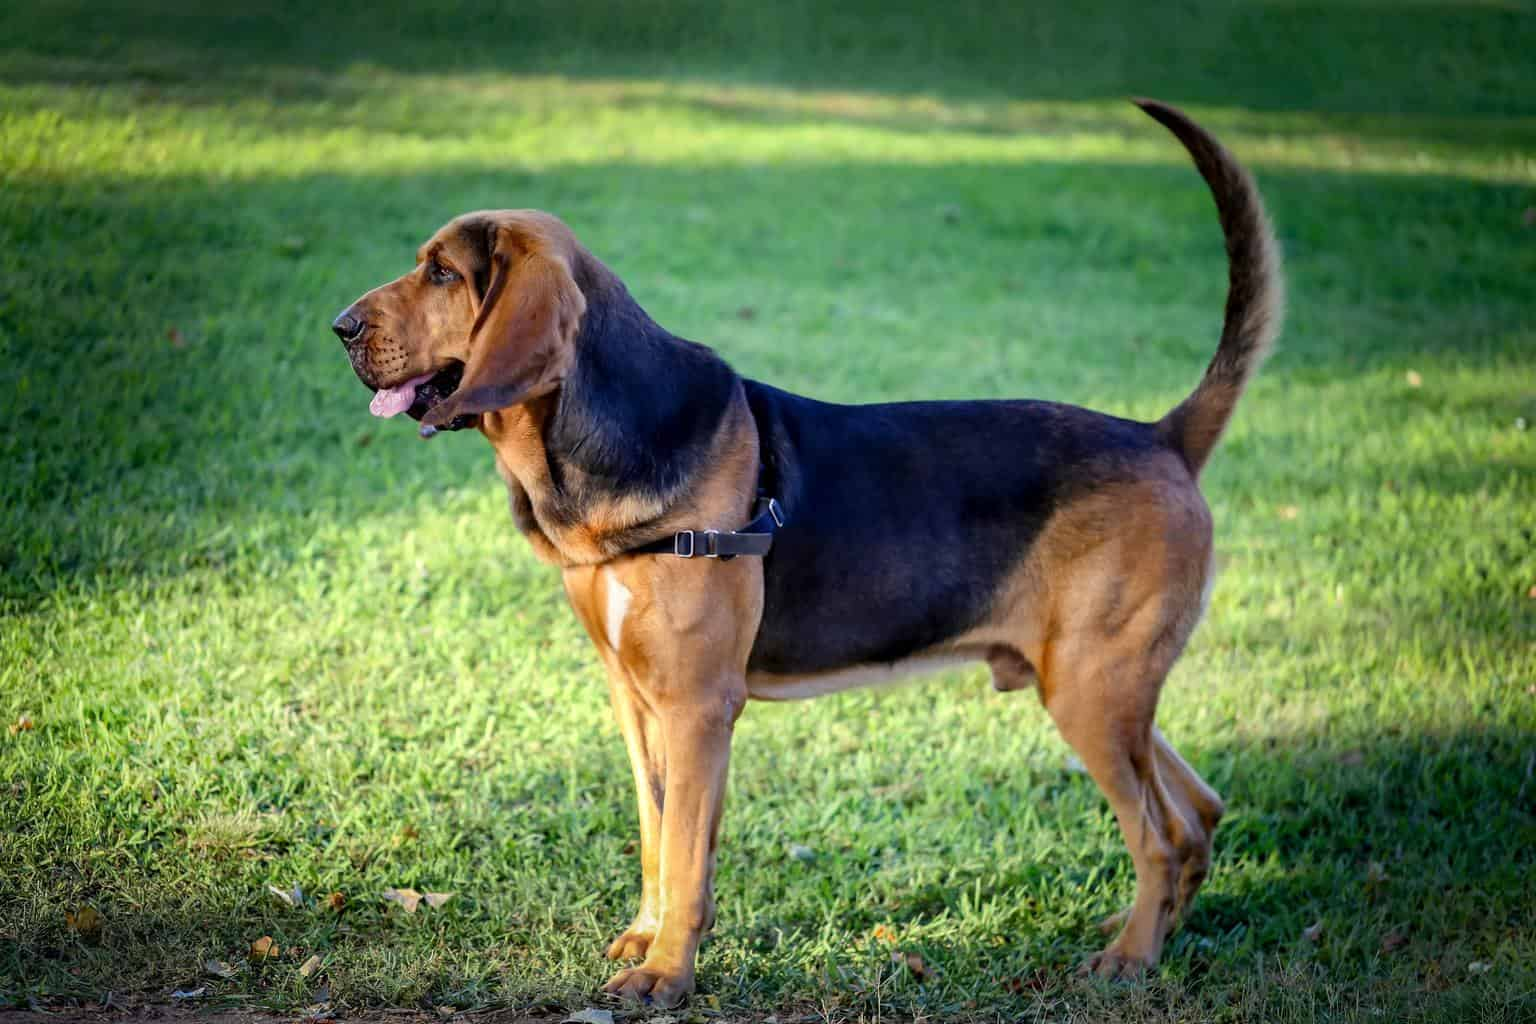 ✨NOMINATED✨ A beautiful young bloodhound stands on a green lawn on a sunny summer day.